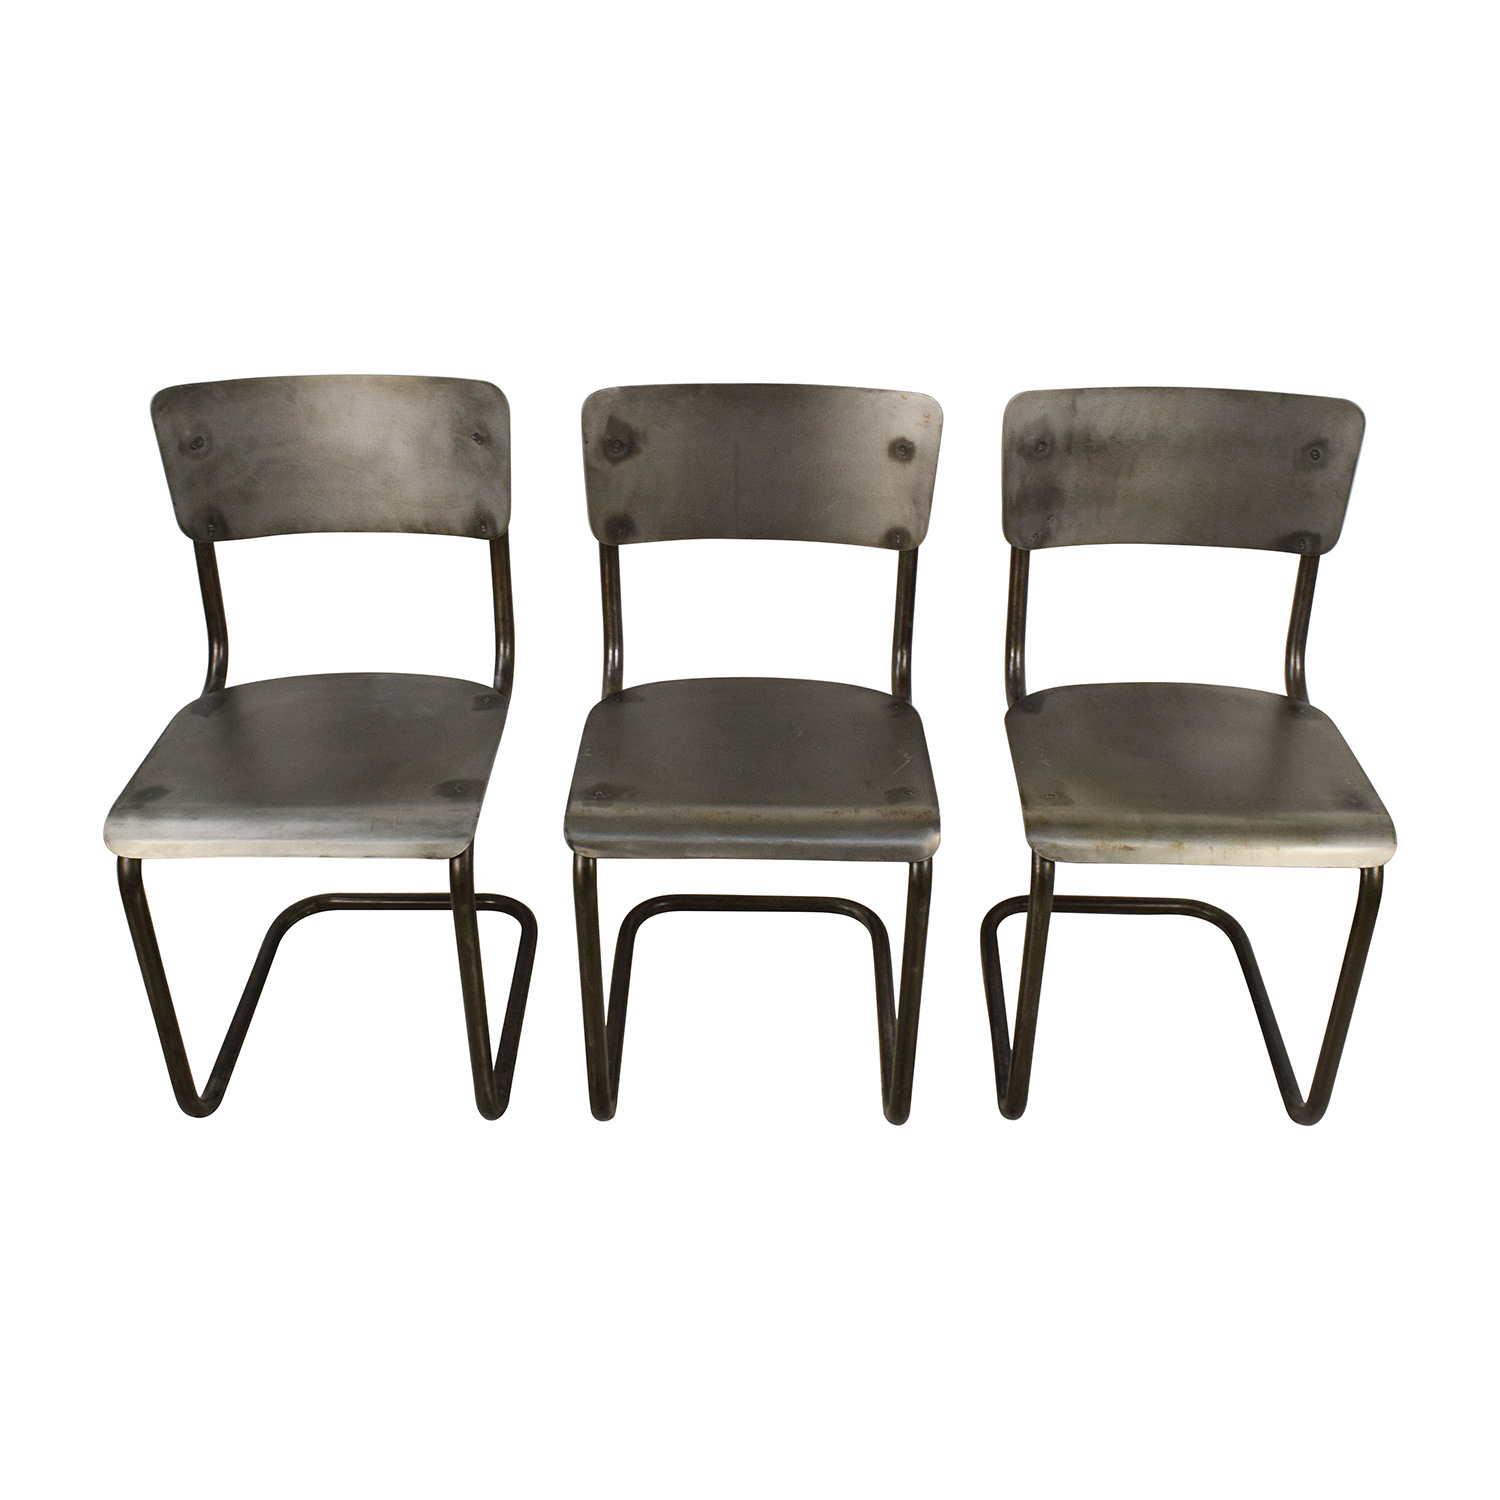 Industrial Style Metal Chair Set coupon